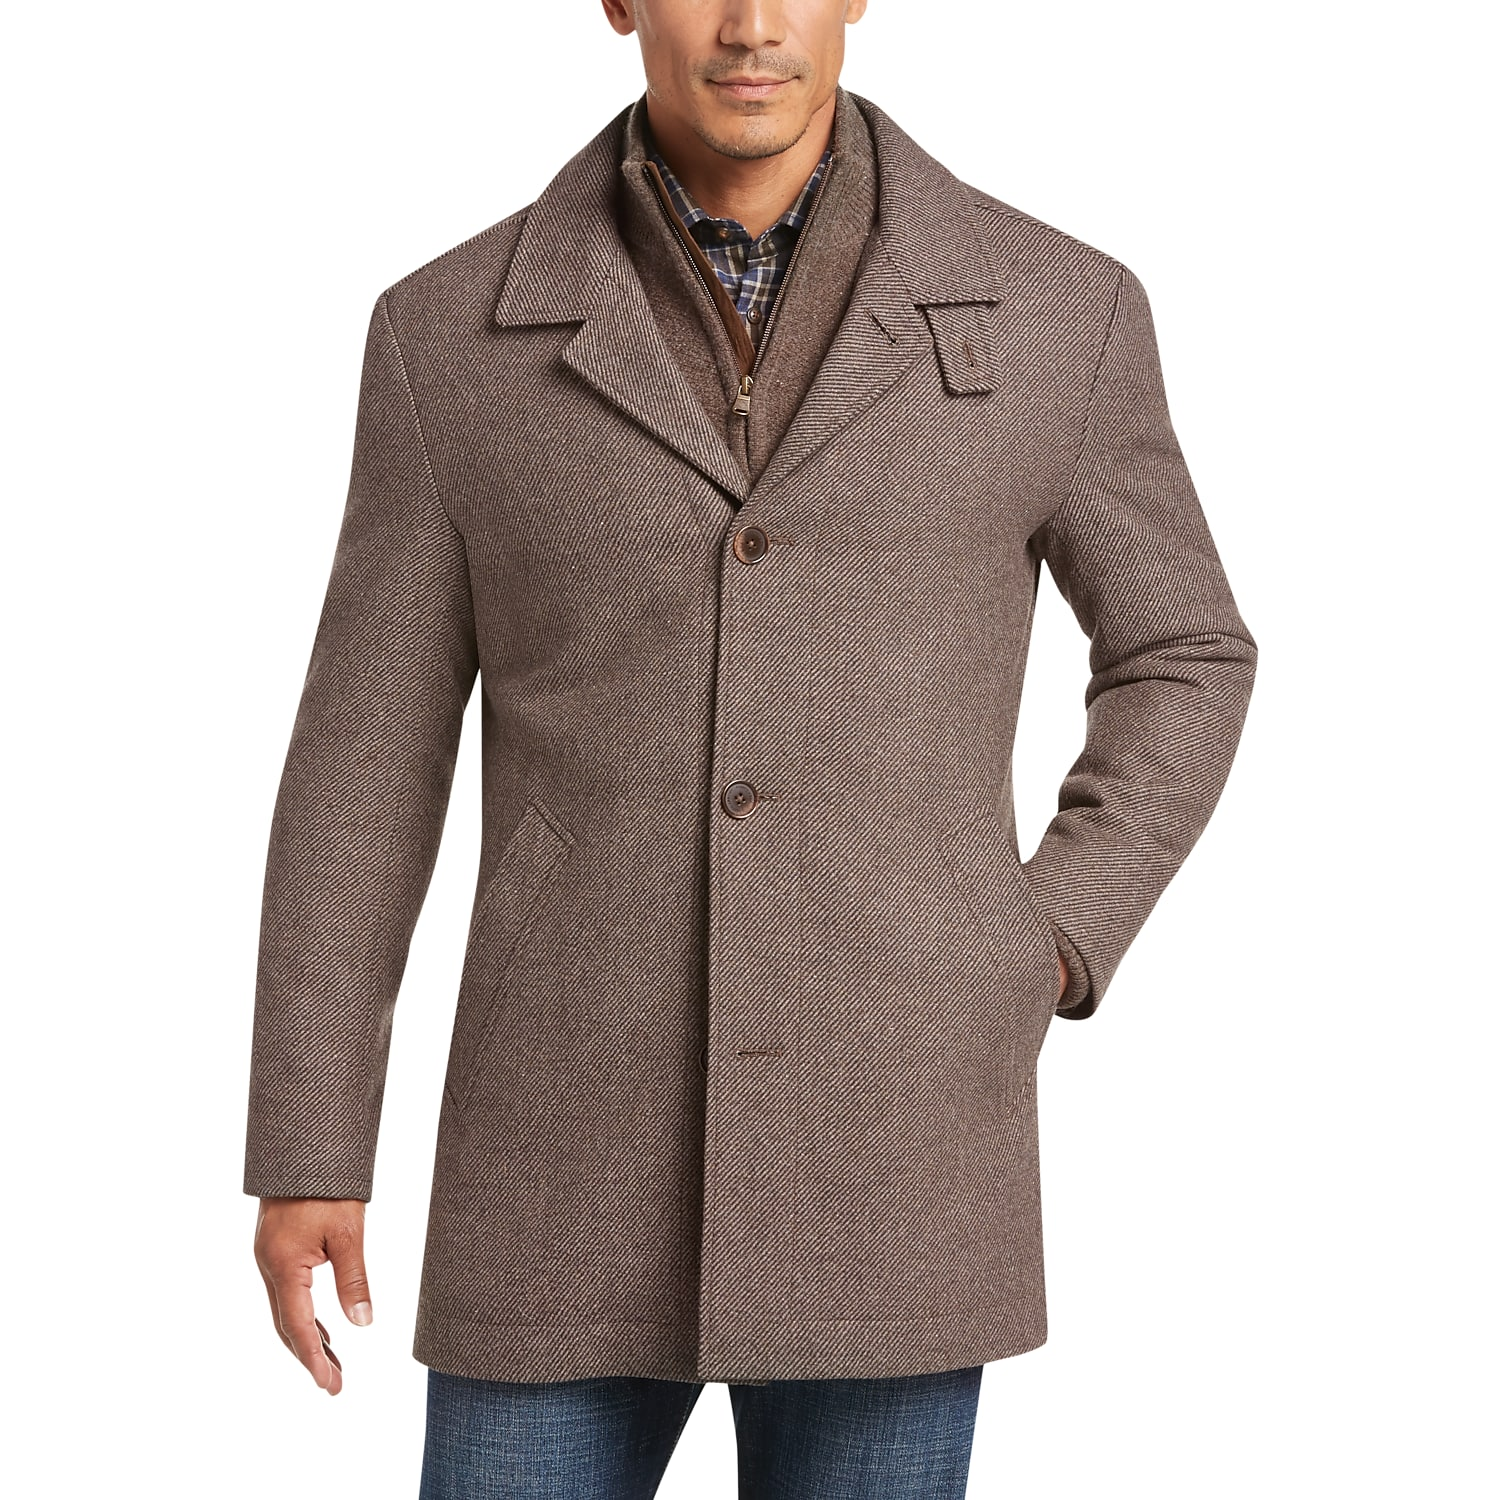 Jackets Outerwear Coats For Men Mens Wearhouse